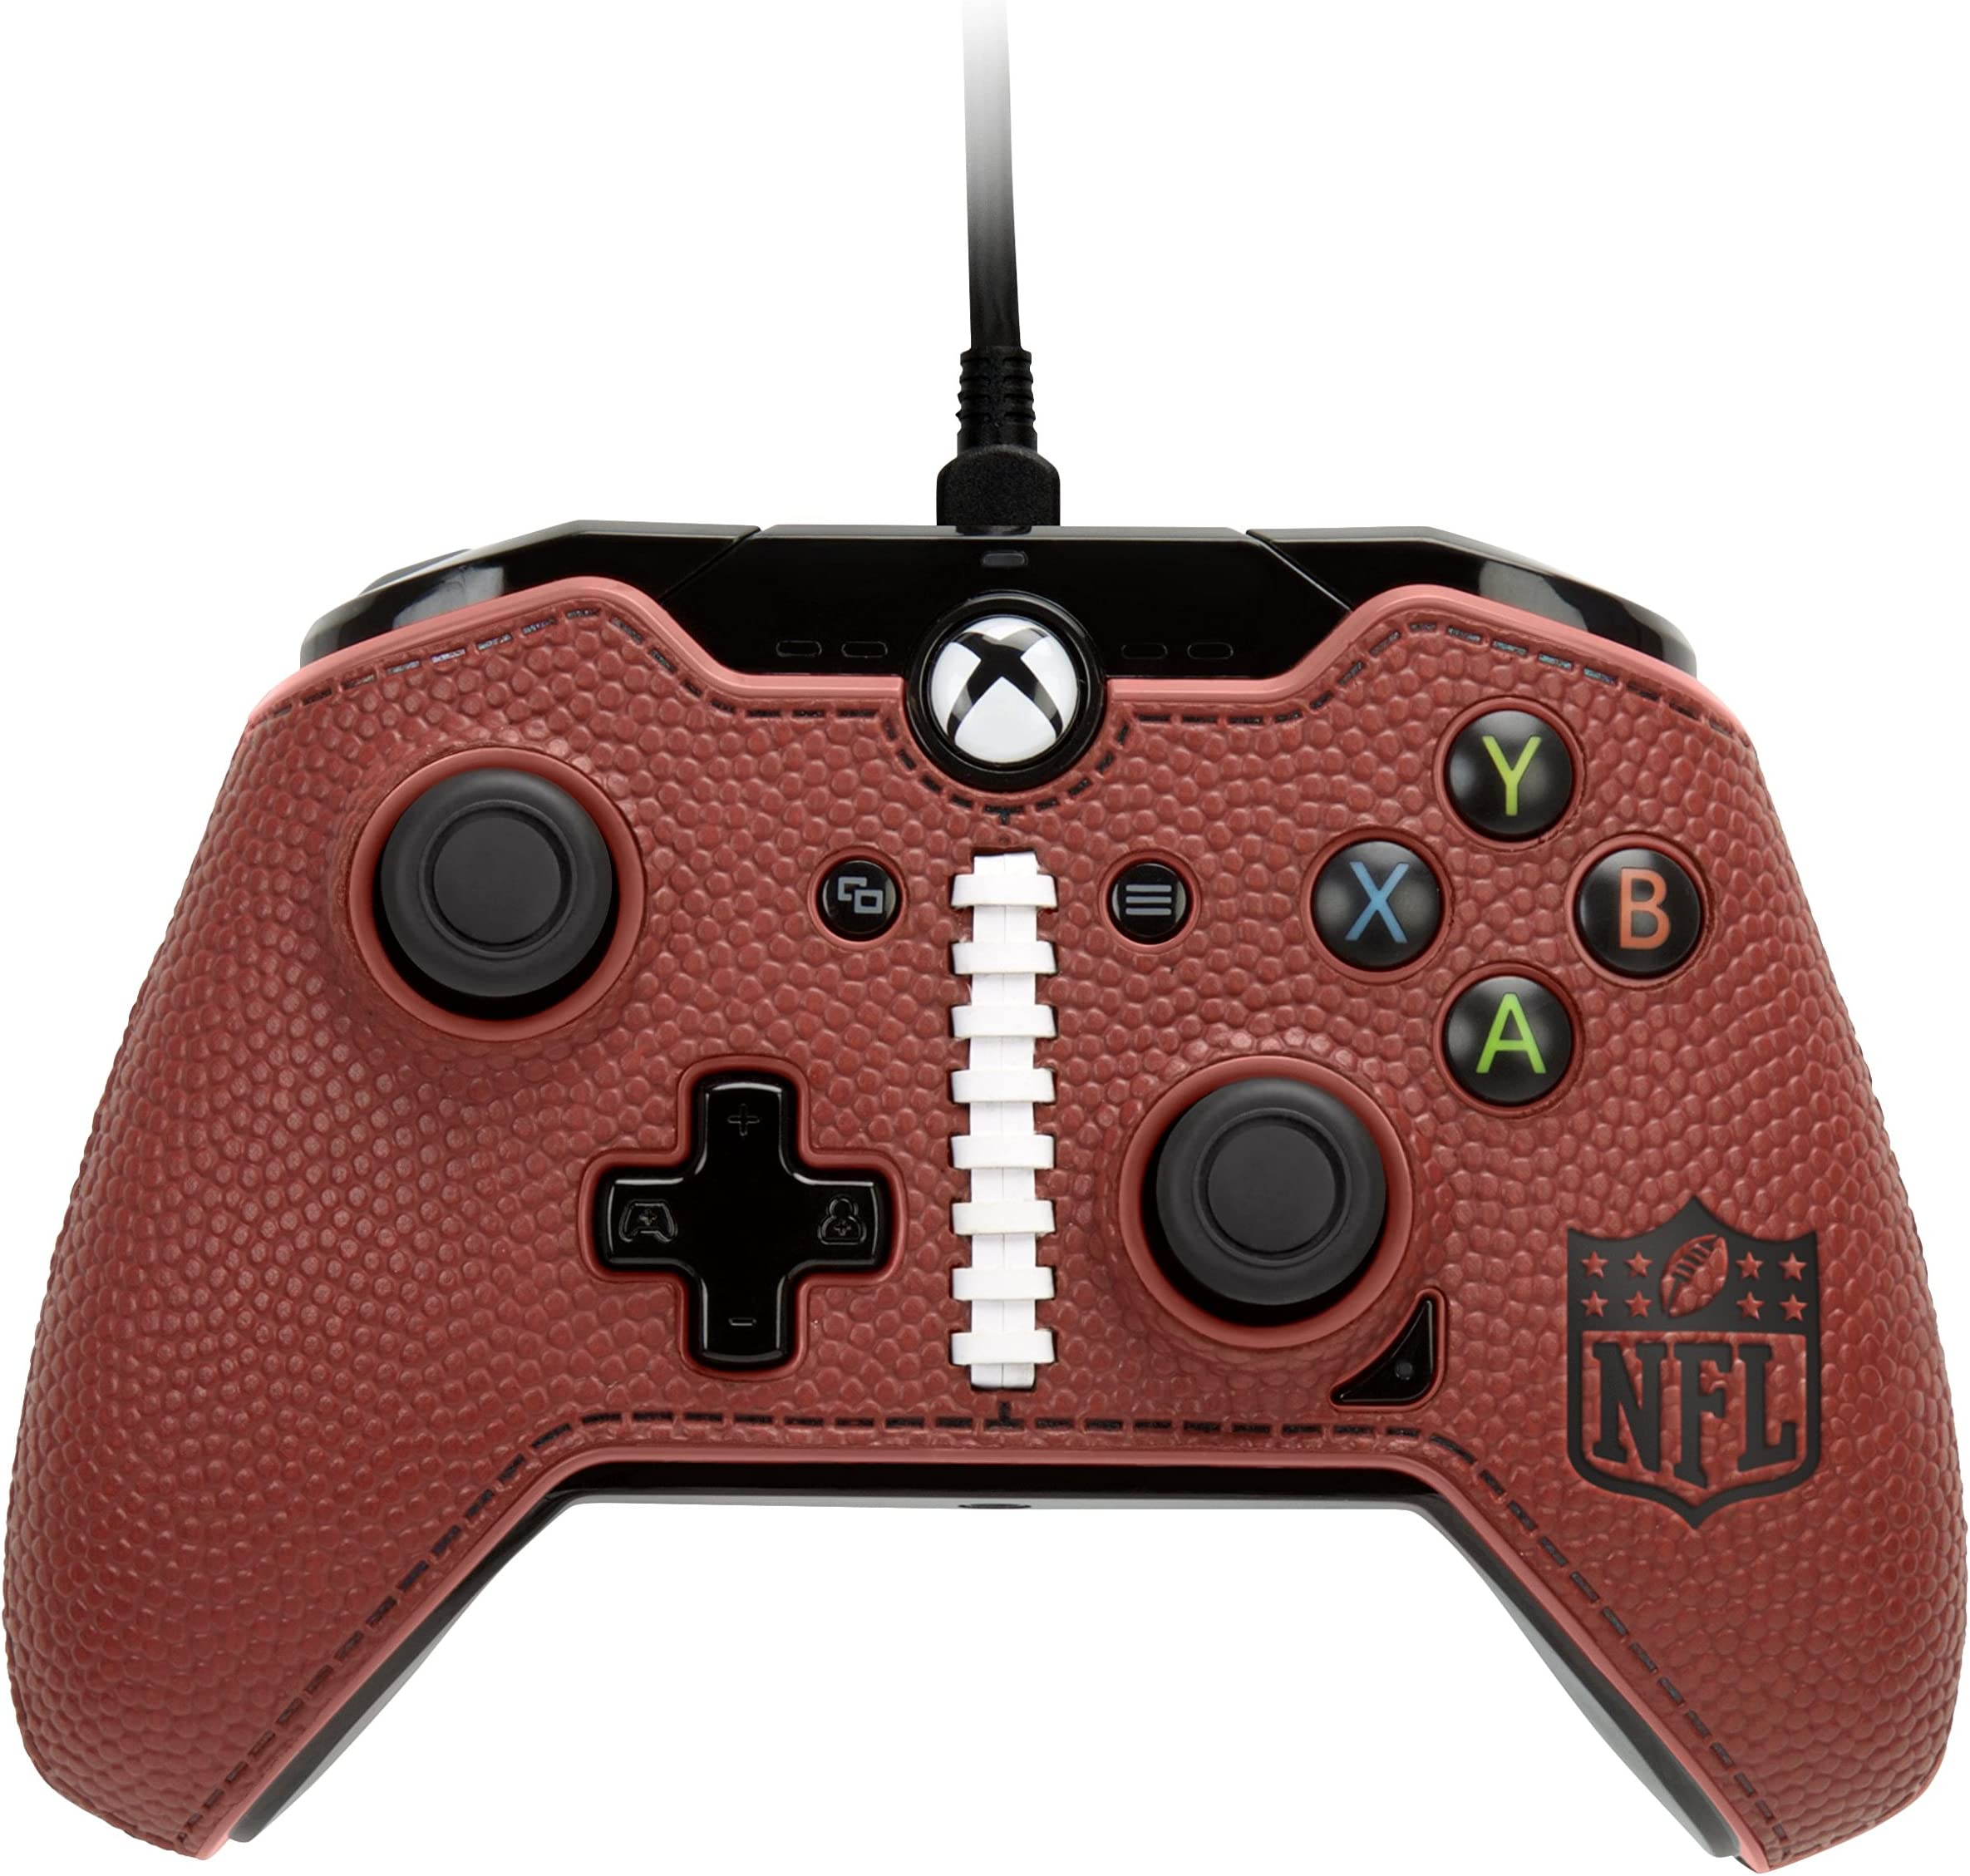 Custom Xbox Controller Nfl Wiring Diagrams Authorzj Keyword Voltage Control Oscillator Circuit Fromseekic Amazon Com Pdp Official Face Off For One Rh